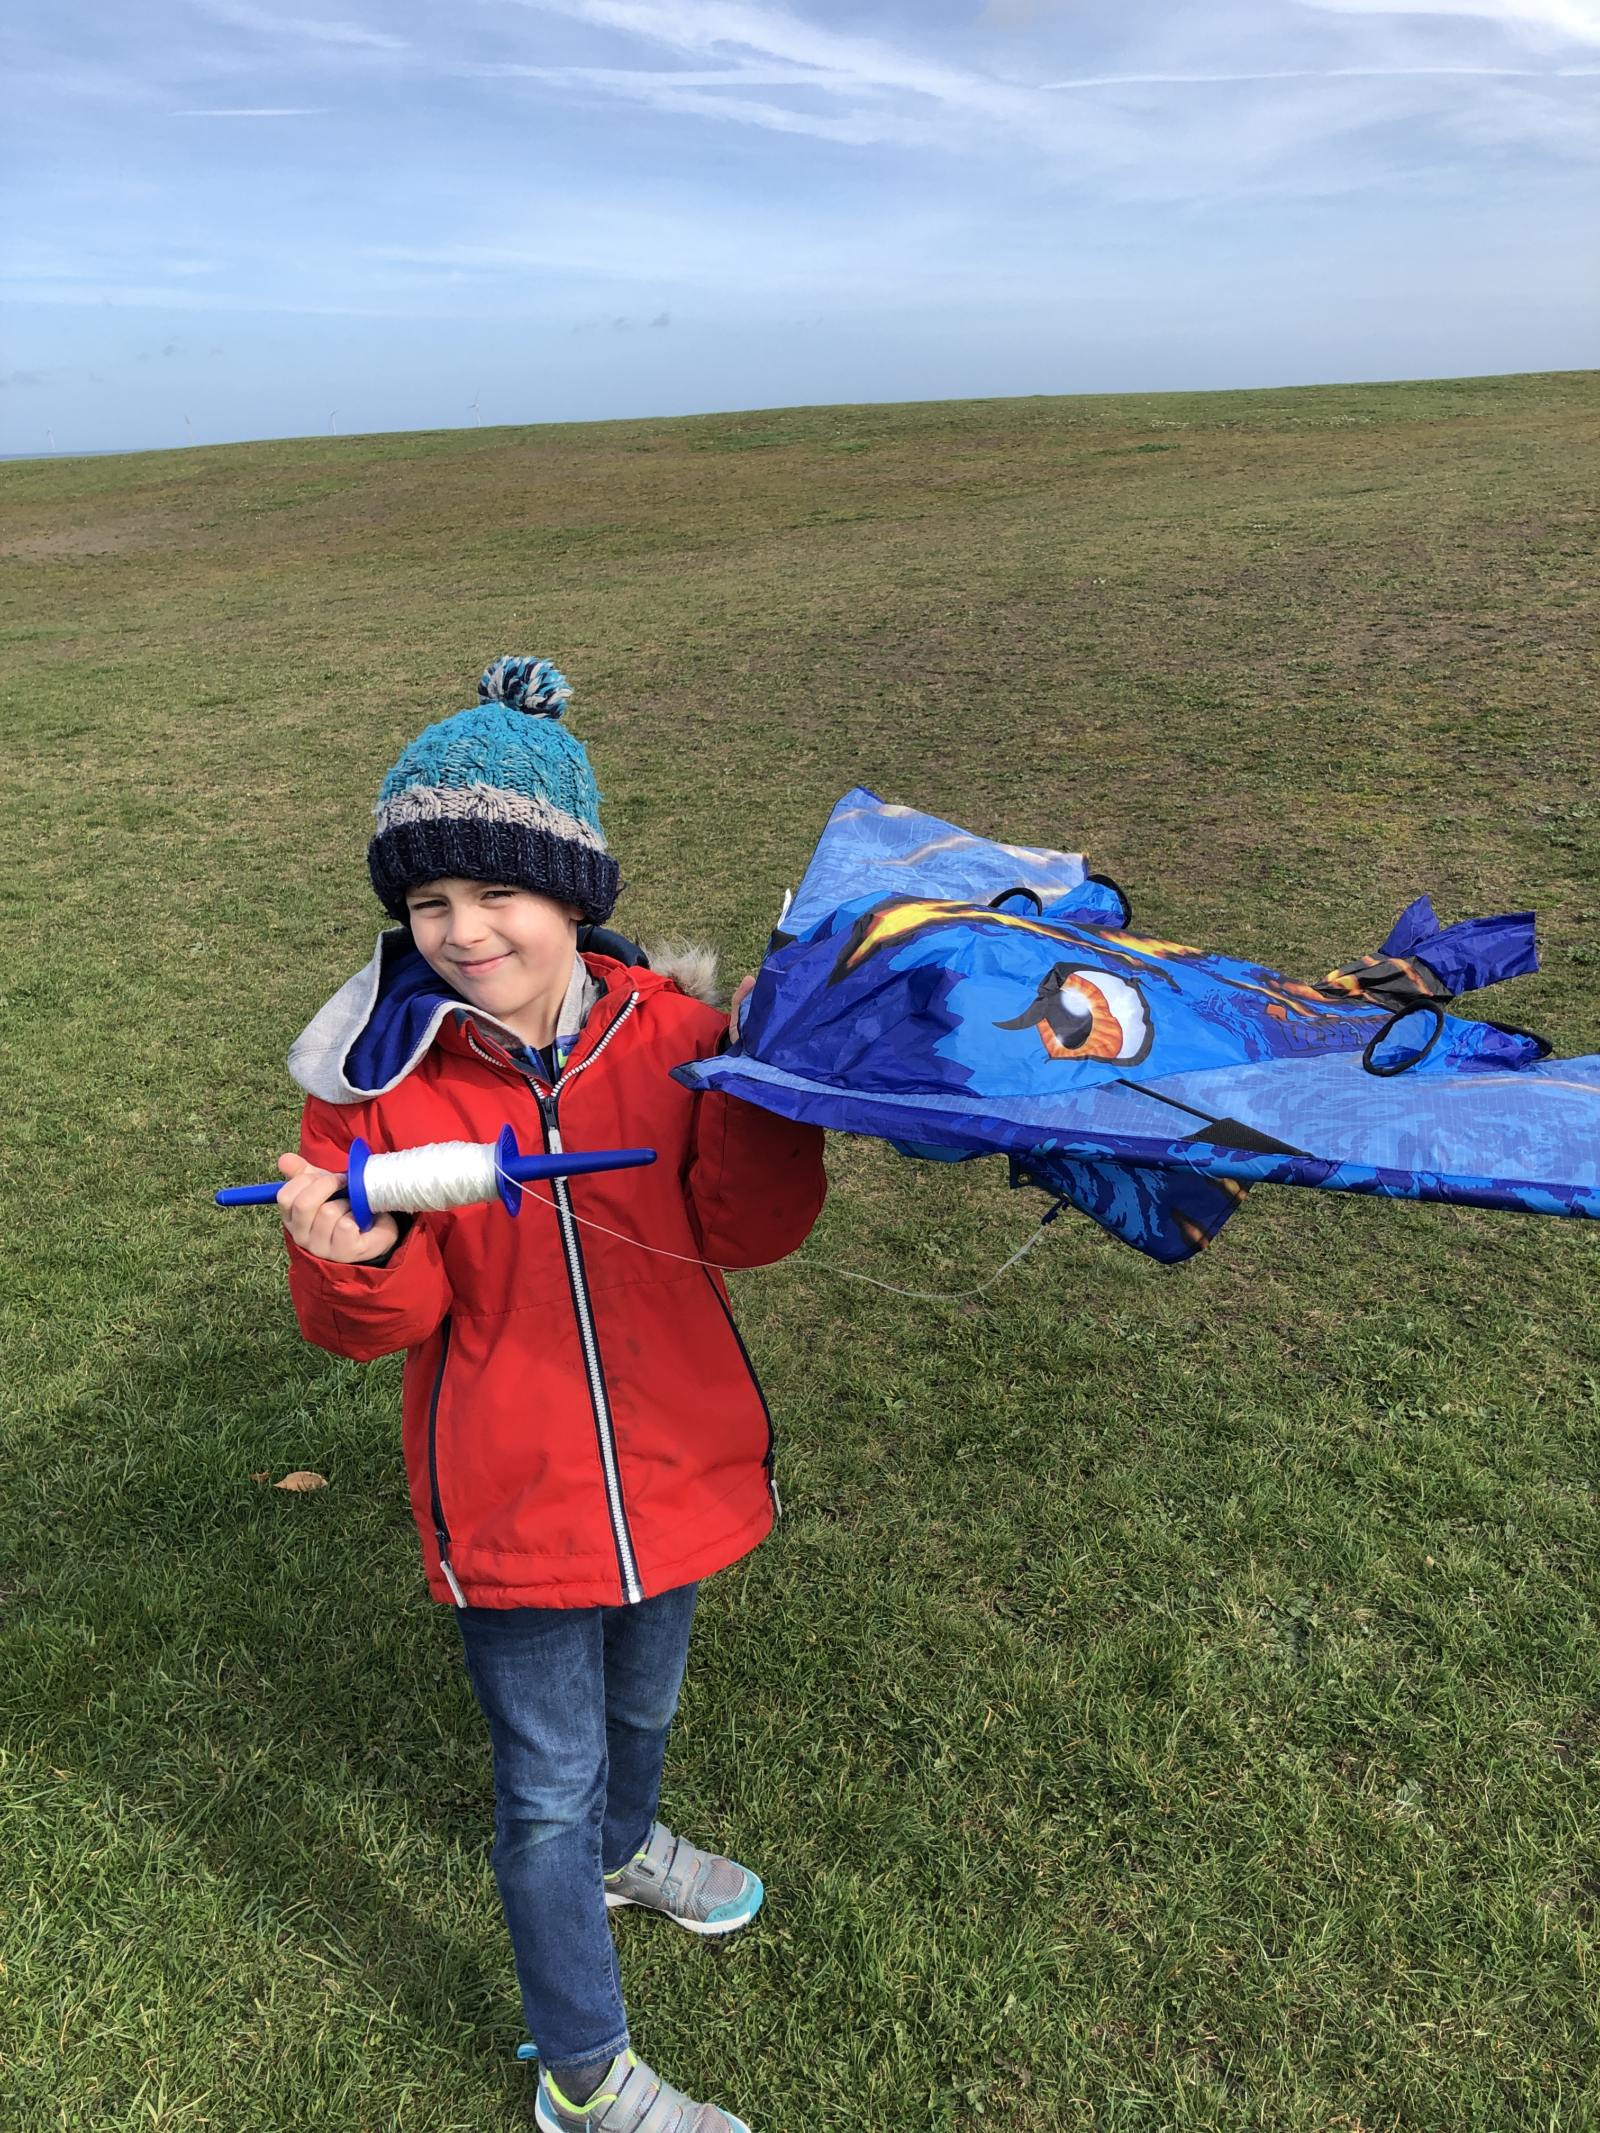 a young boy holding a kitedrone aircraft style kite and string spool